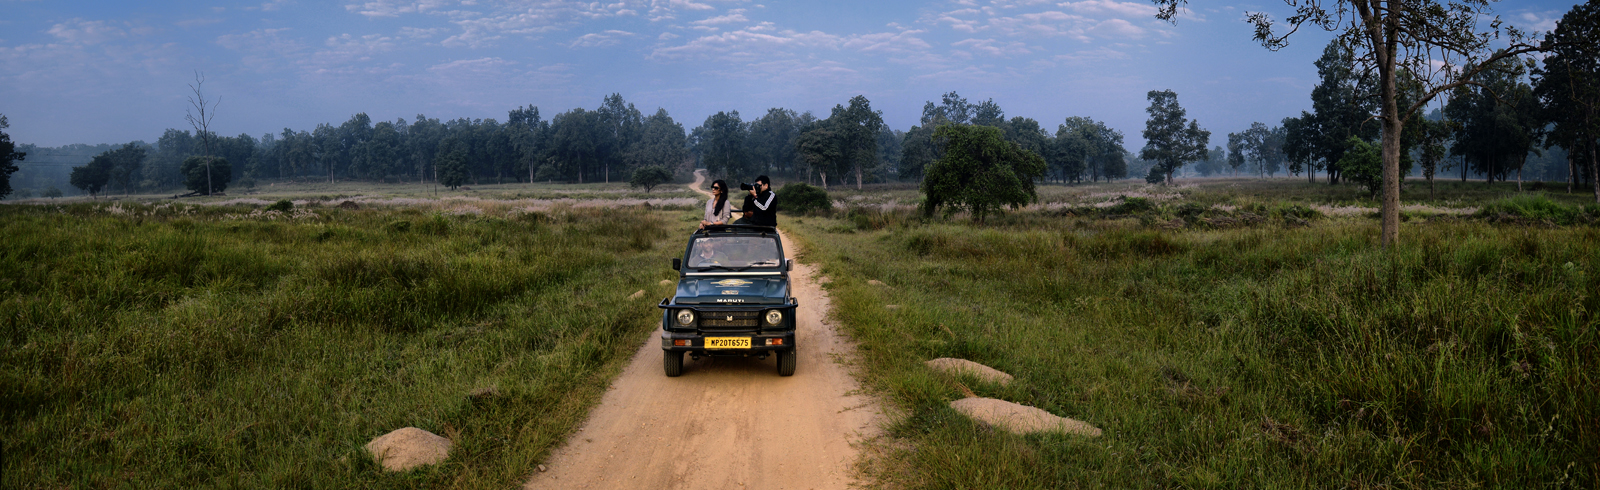 jeep-safaris